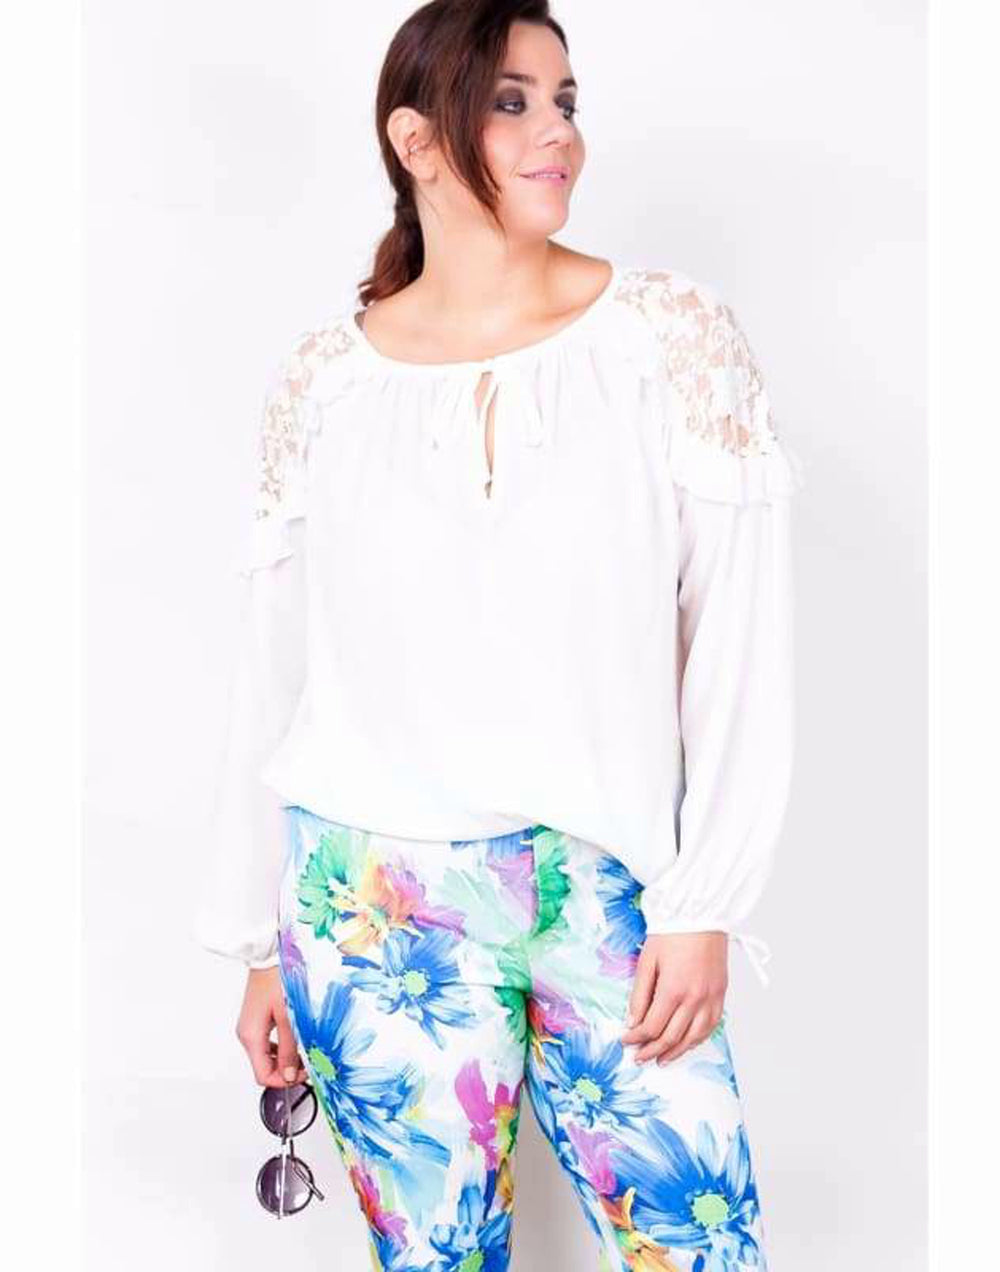 Lace Shoulder Ruffle Blouse - 16/18 / White - Plus Size Tops & Shirts blouses lace ruffle tops lace shoulder ruffle blouse lace tops Plus